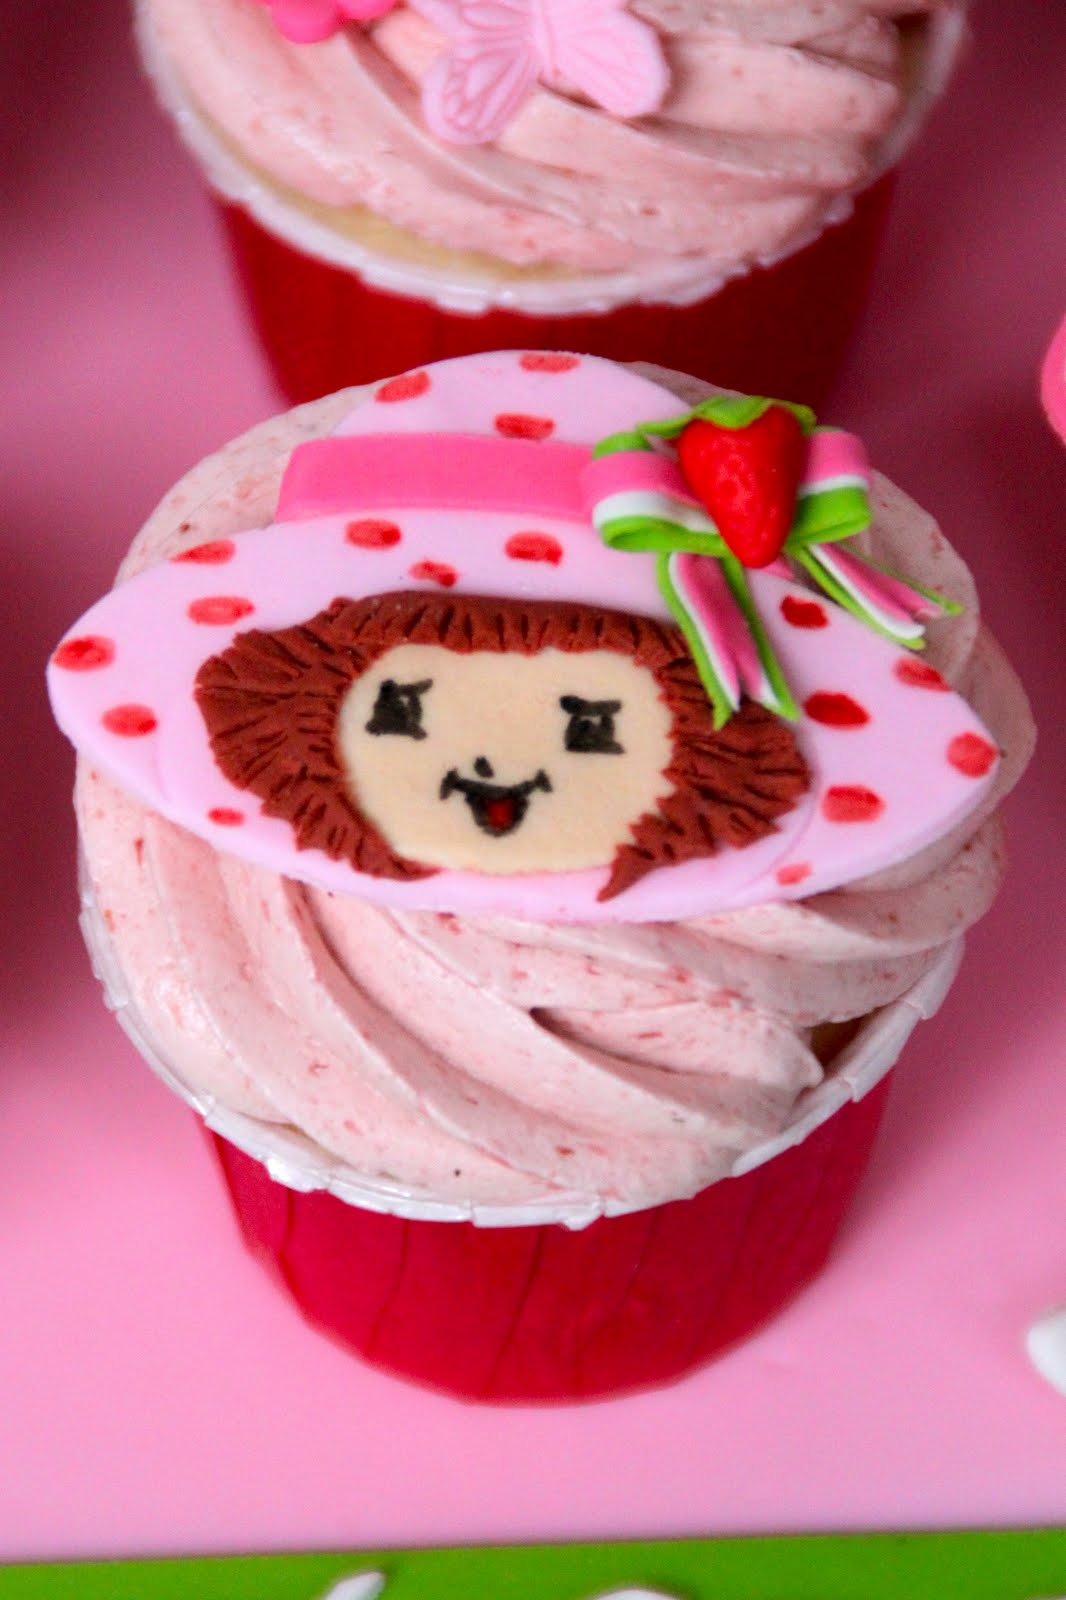 Celebrate with Cake!: Strawberry Shortcake Cupcakes